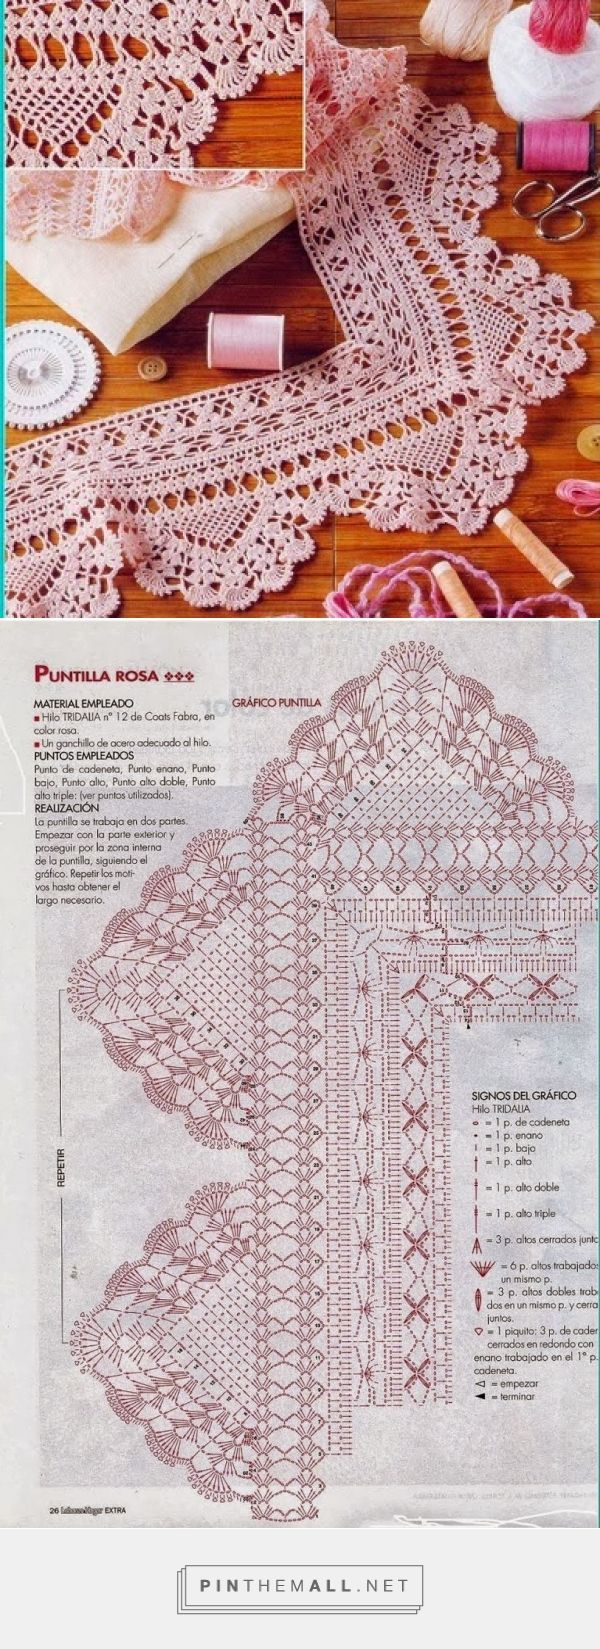 Crochet lace edging with points, shells and scallops ~~ As Receitas de Crochê: Barrado com canto para toalhas